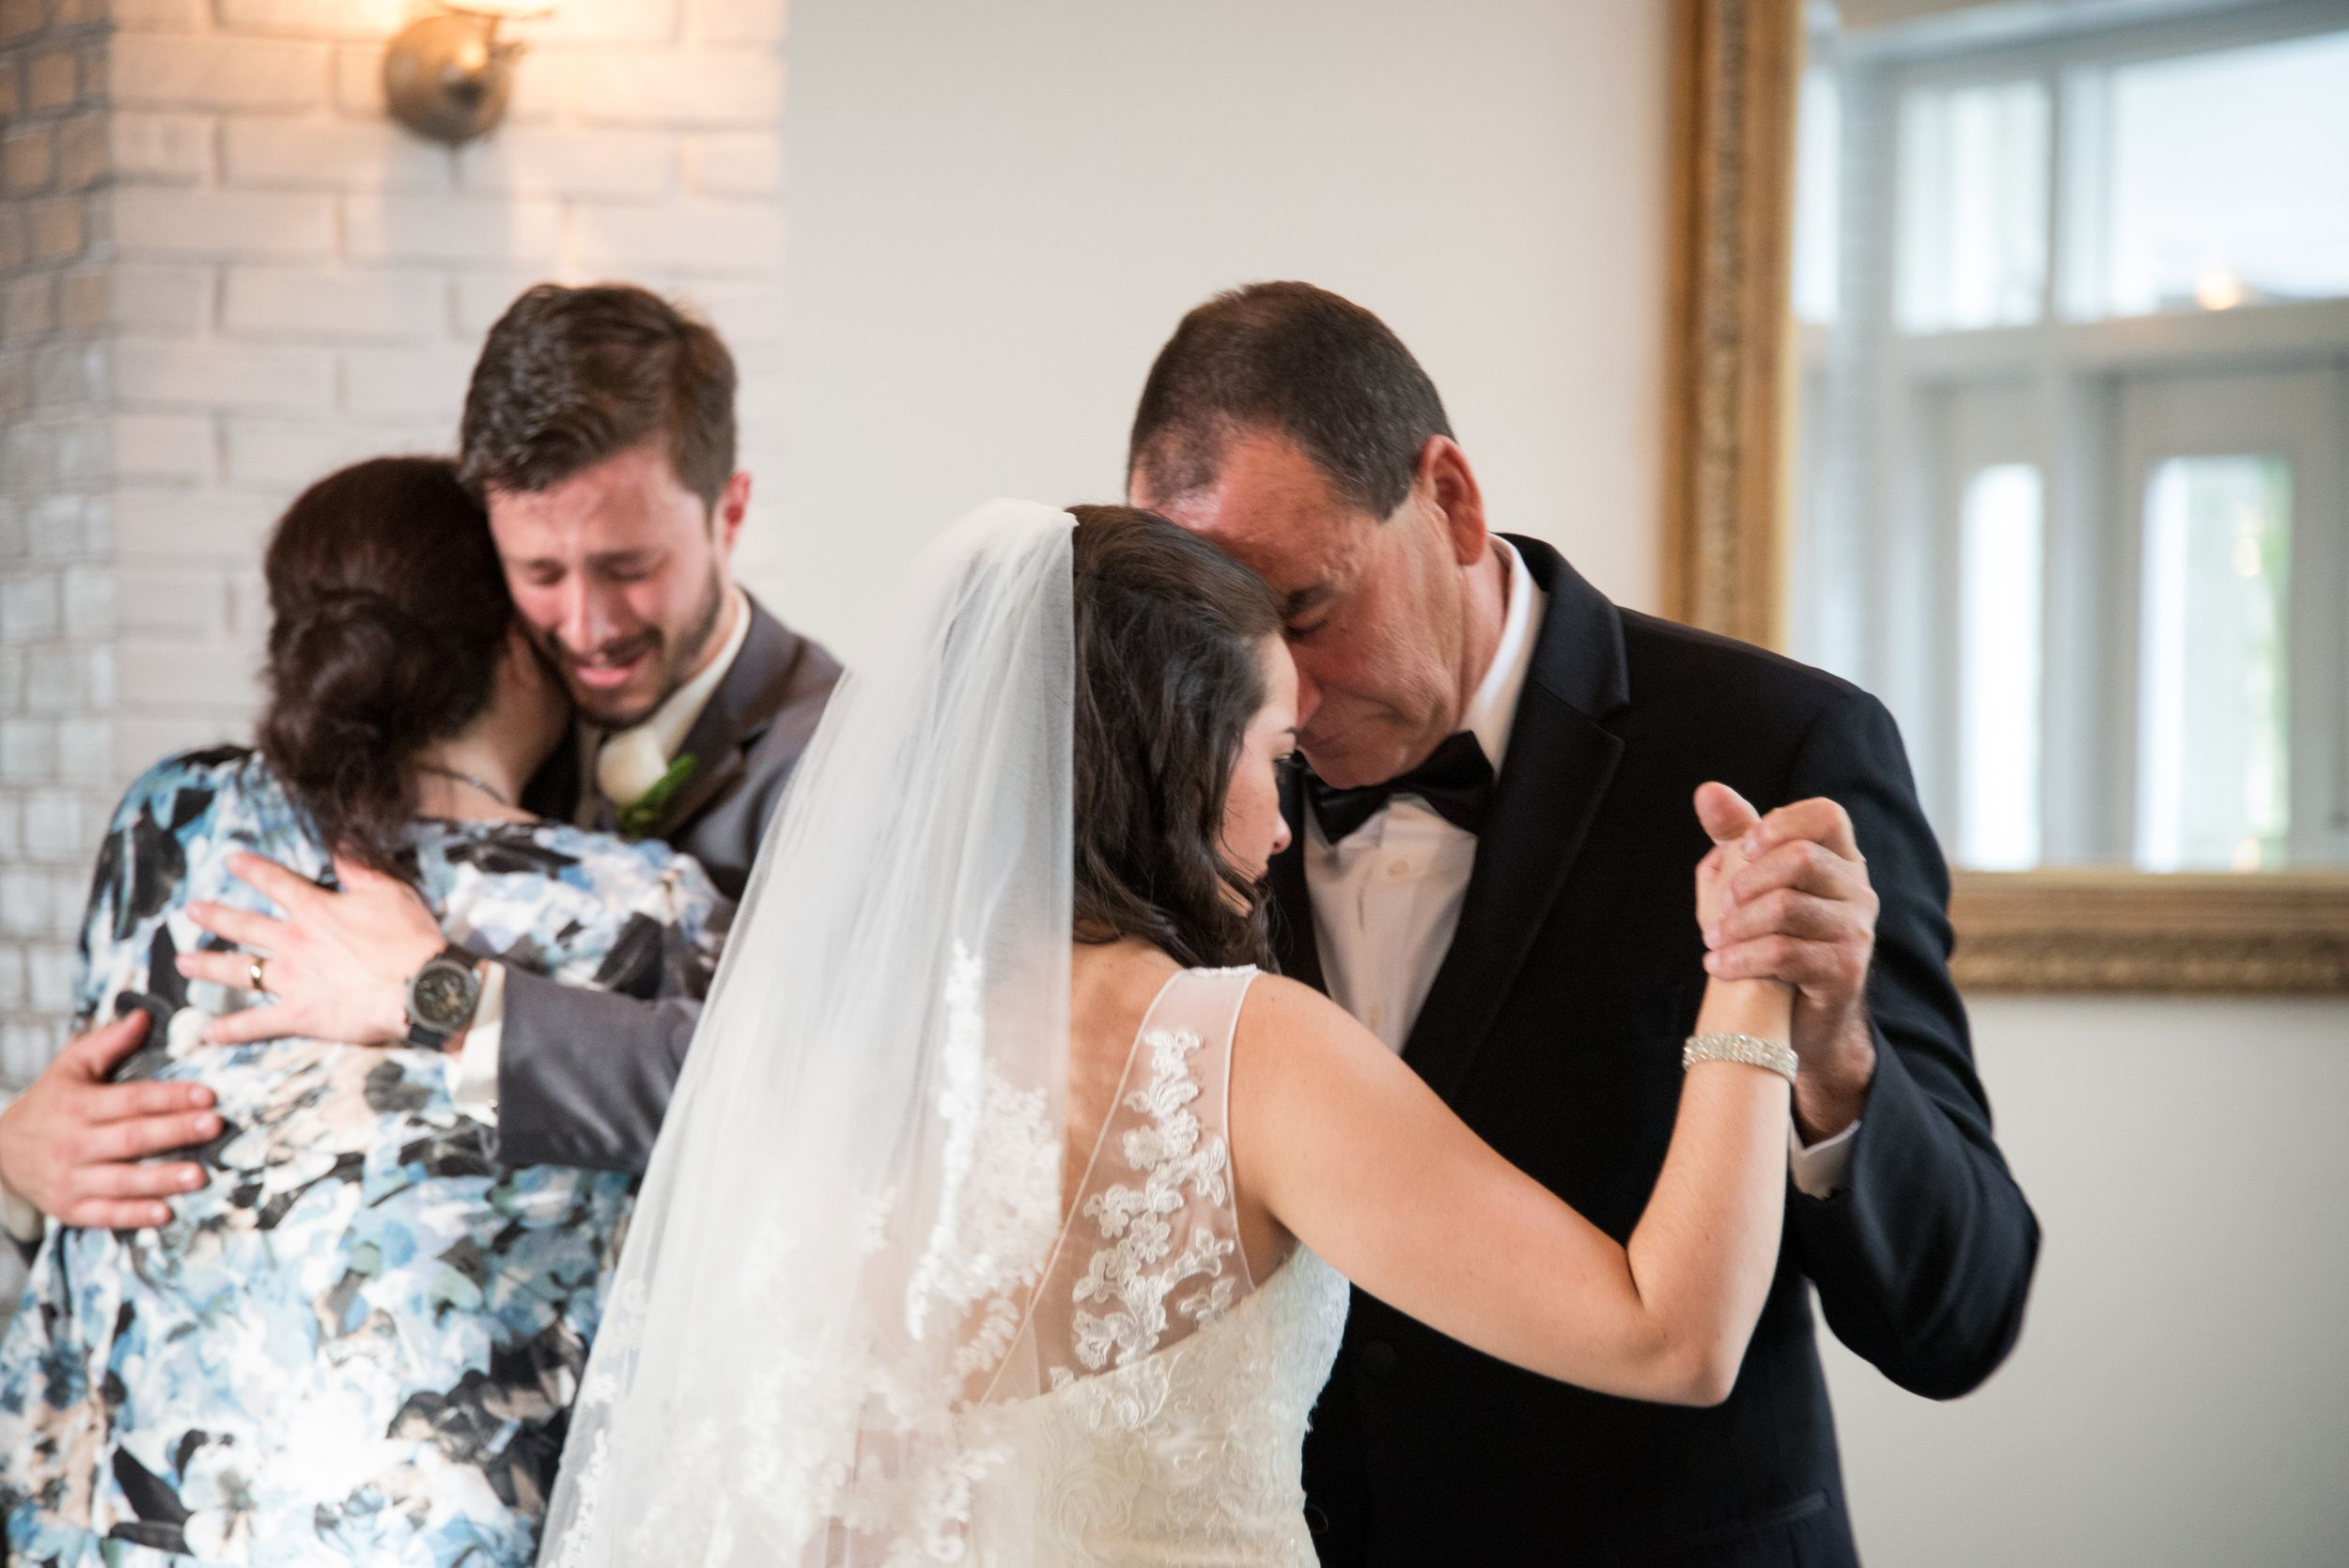 A crying bride dances with her father and a crying groom dances with his mother during a father daughter dance.